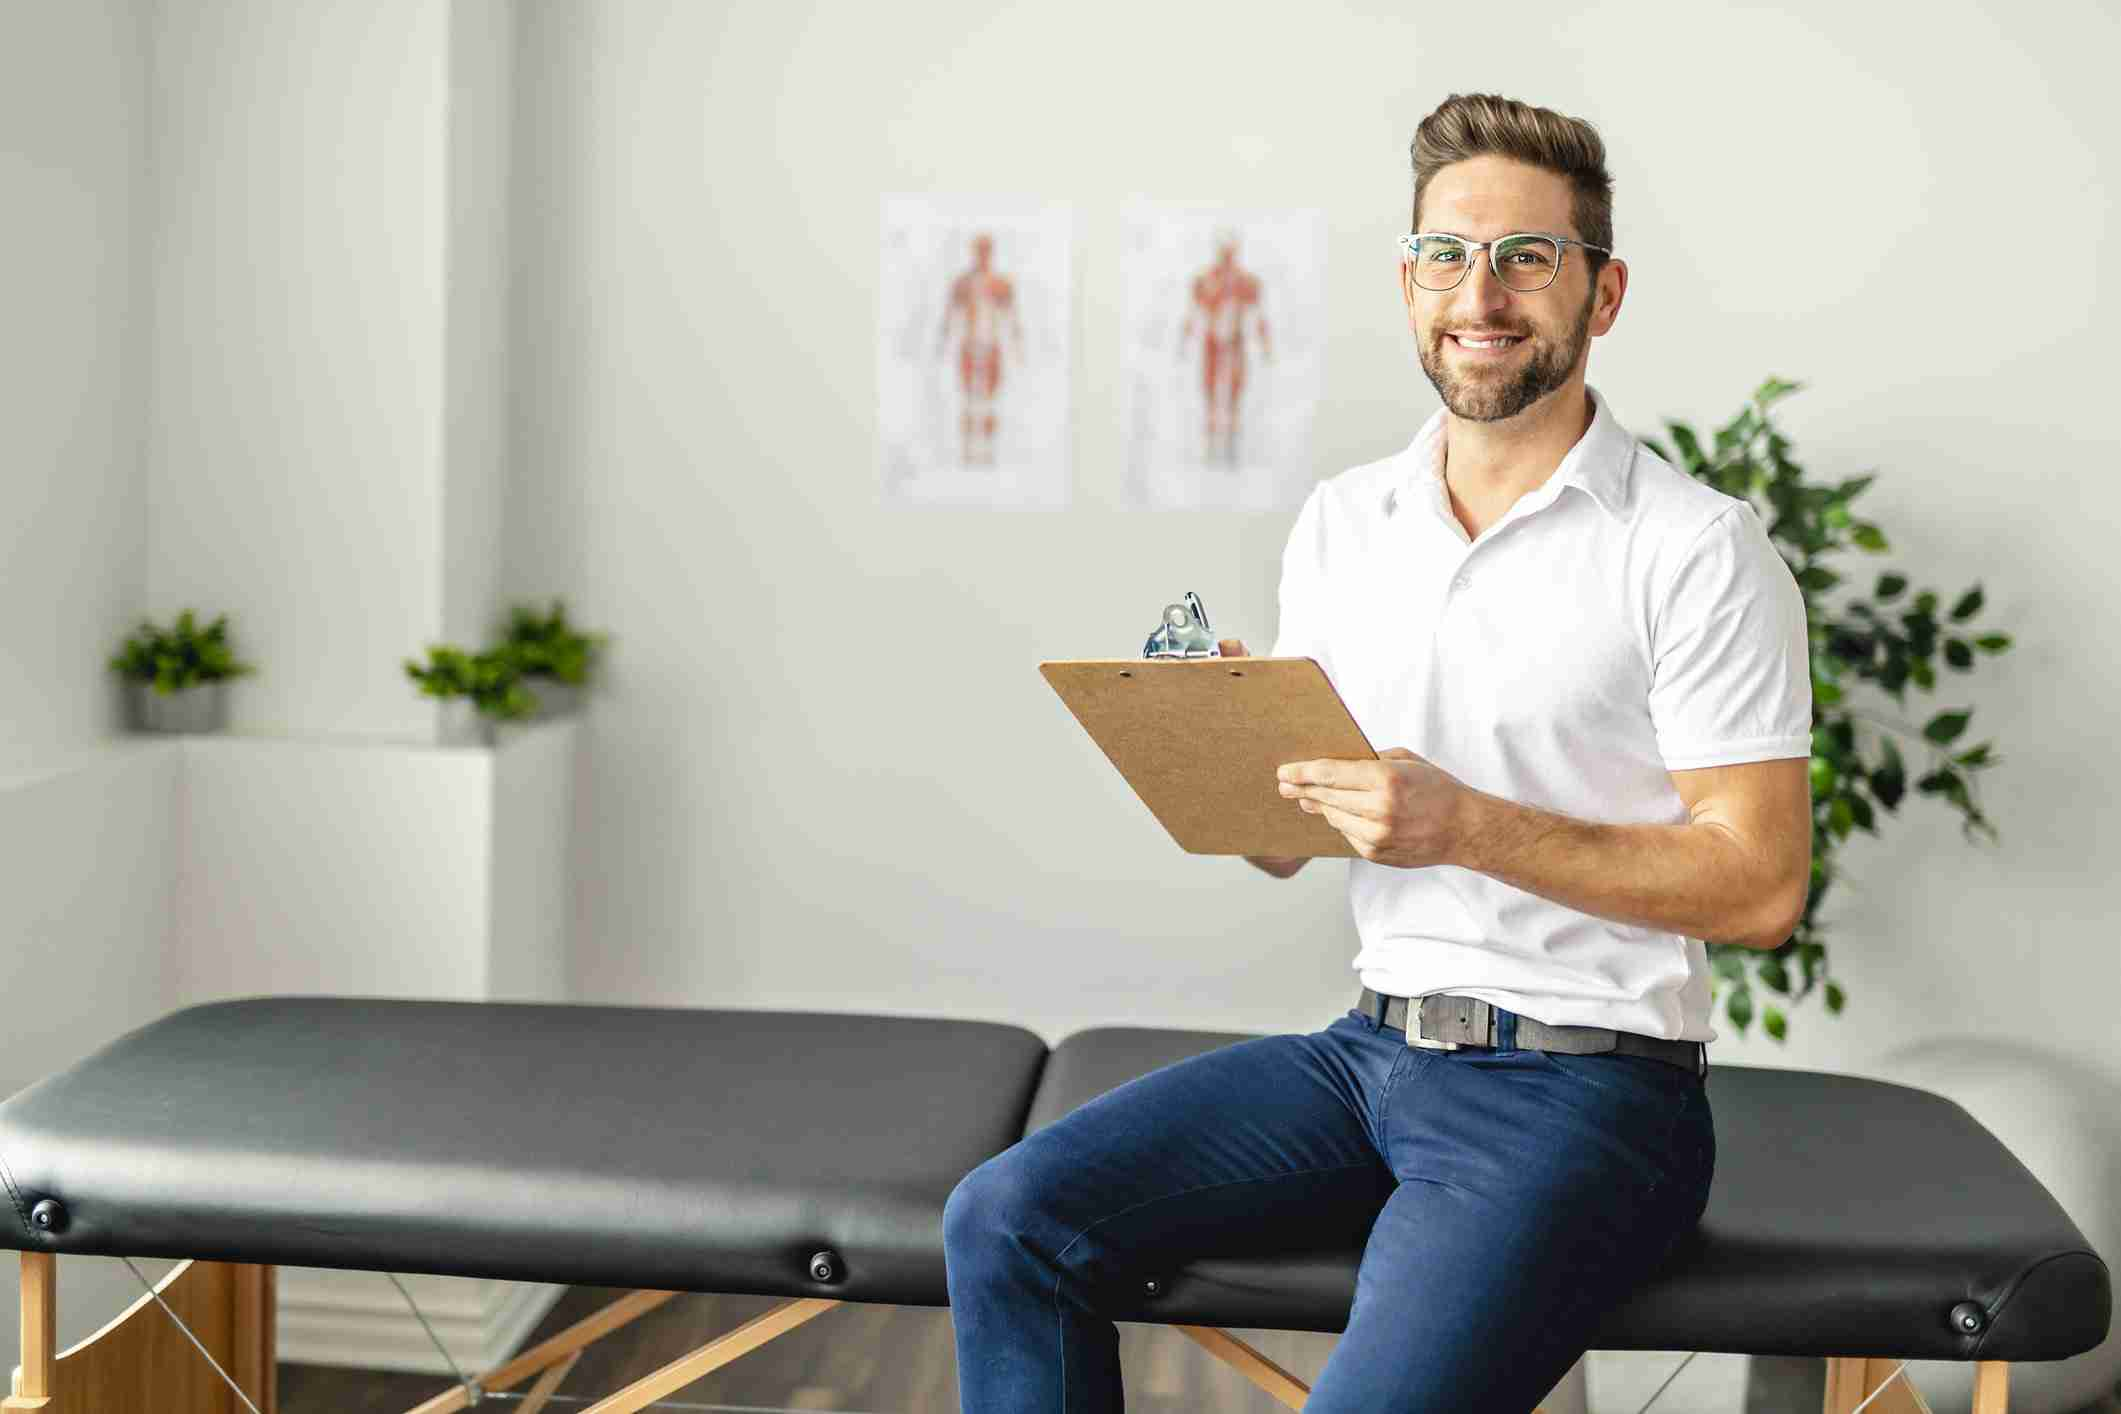 physical therapy clinic owner